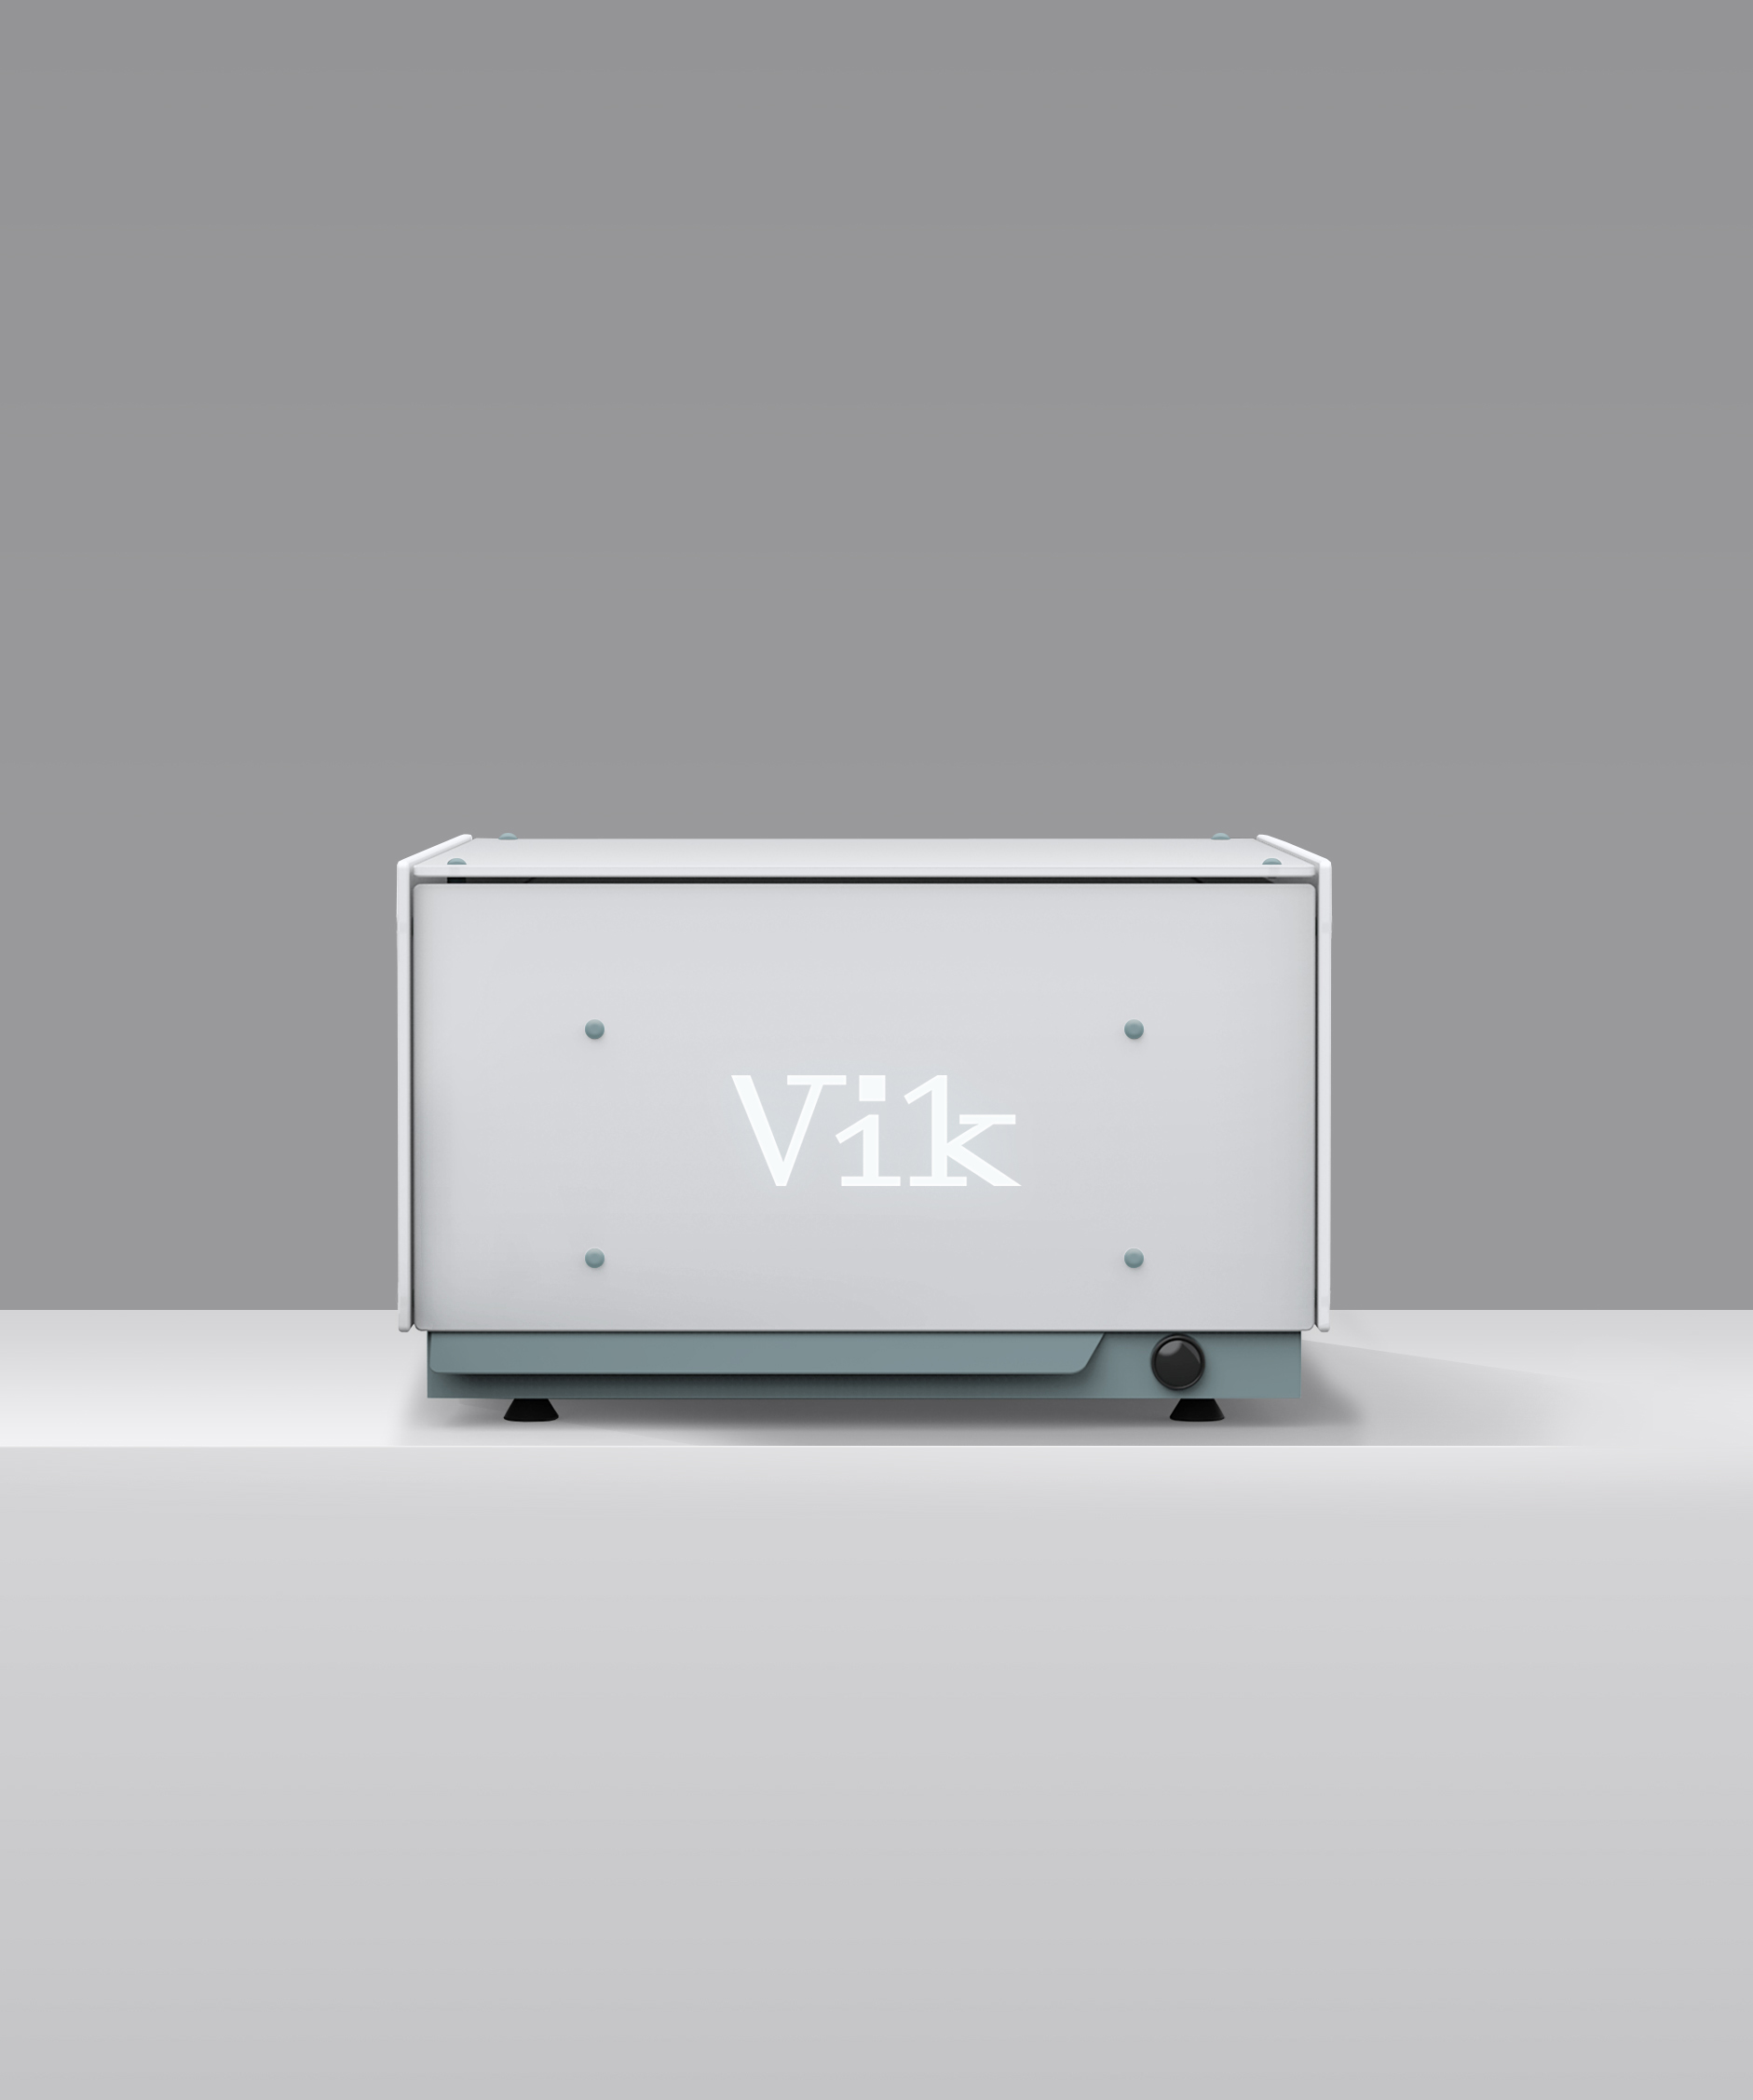 Vik Model i uv-c desinfectiekast